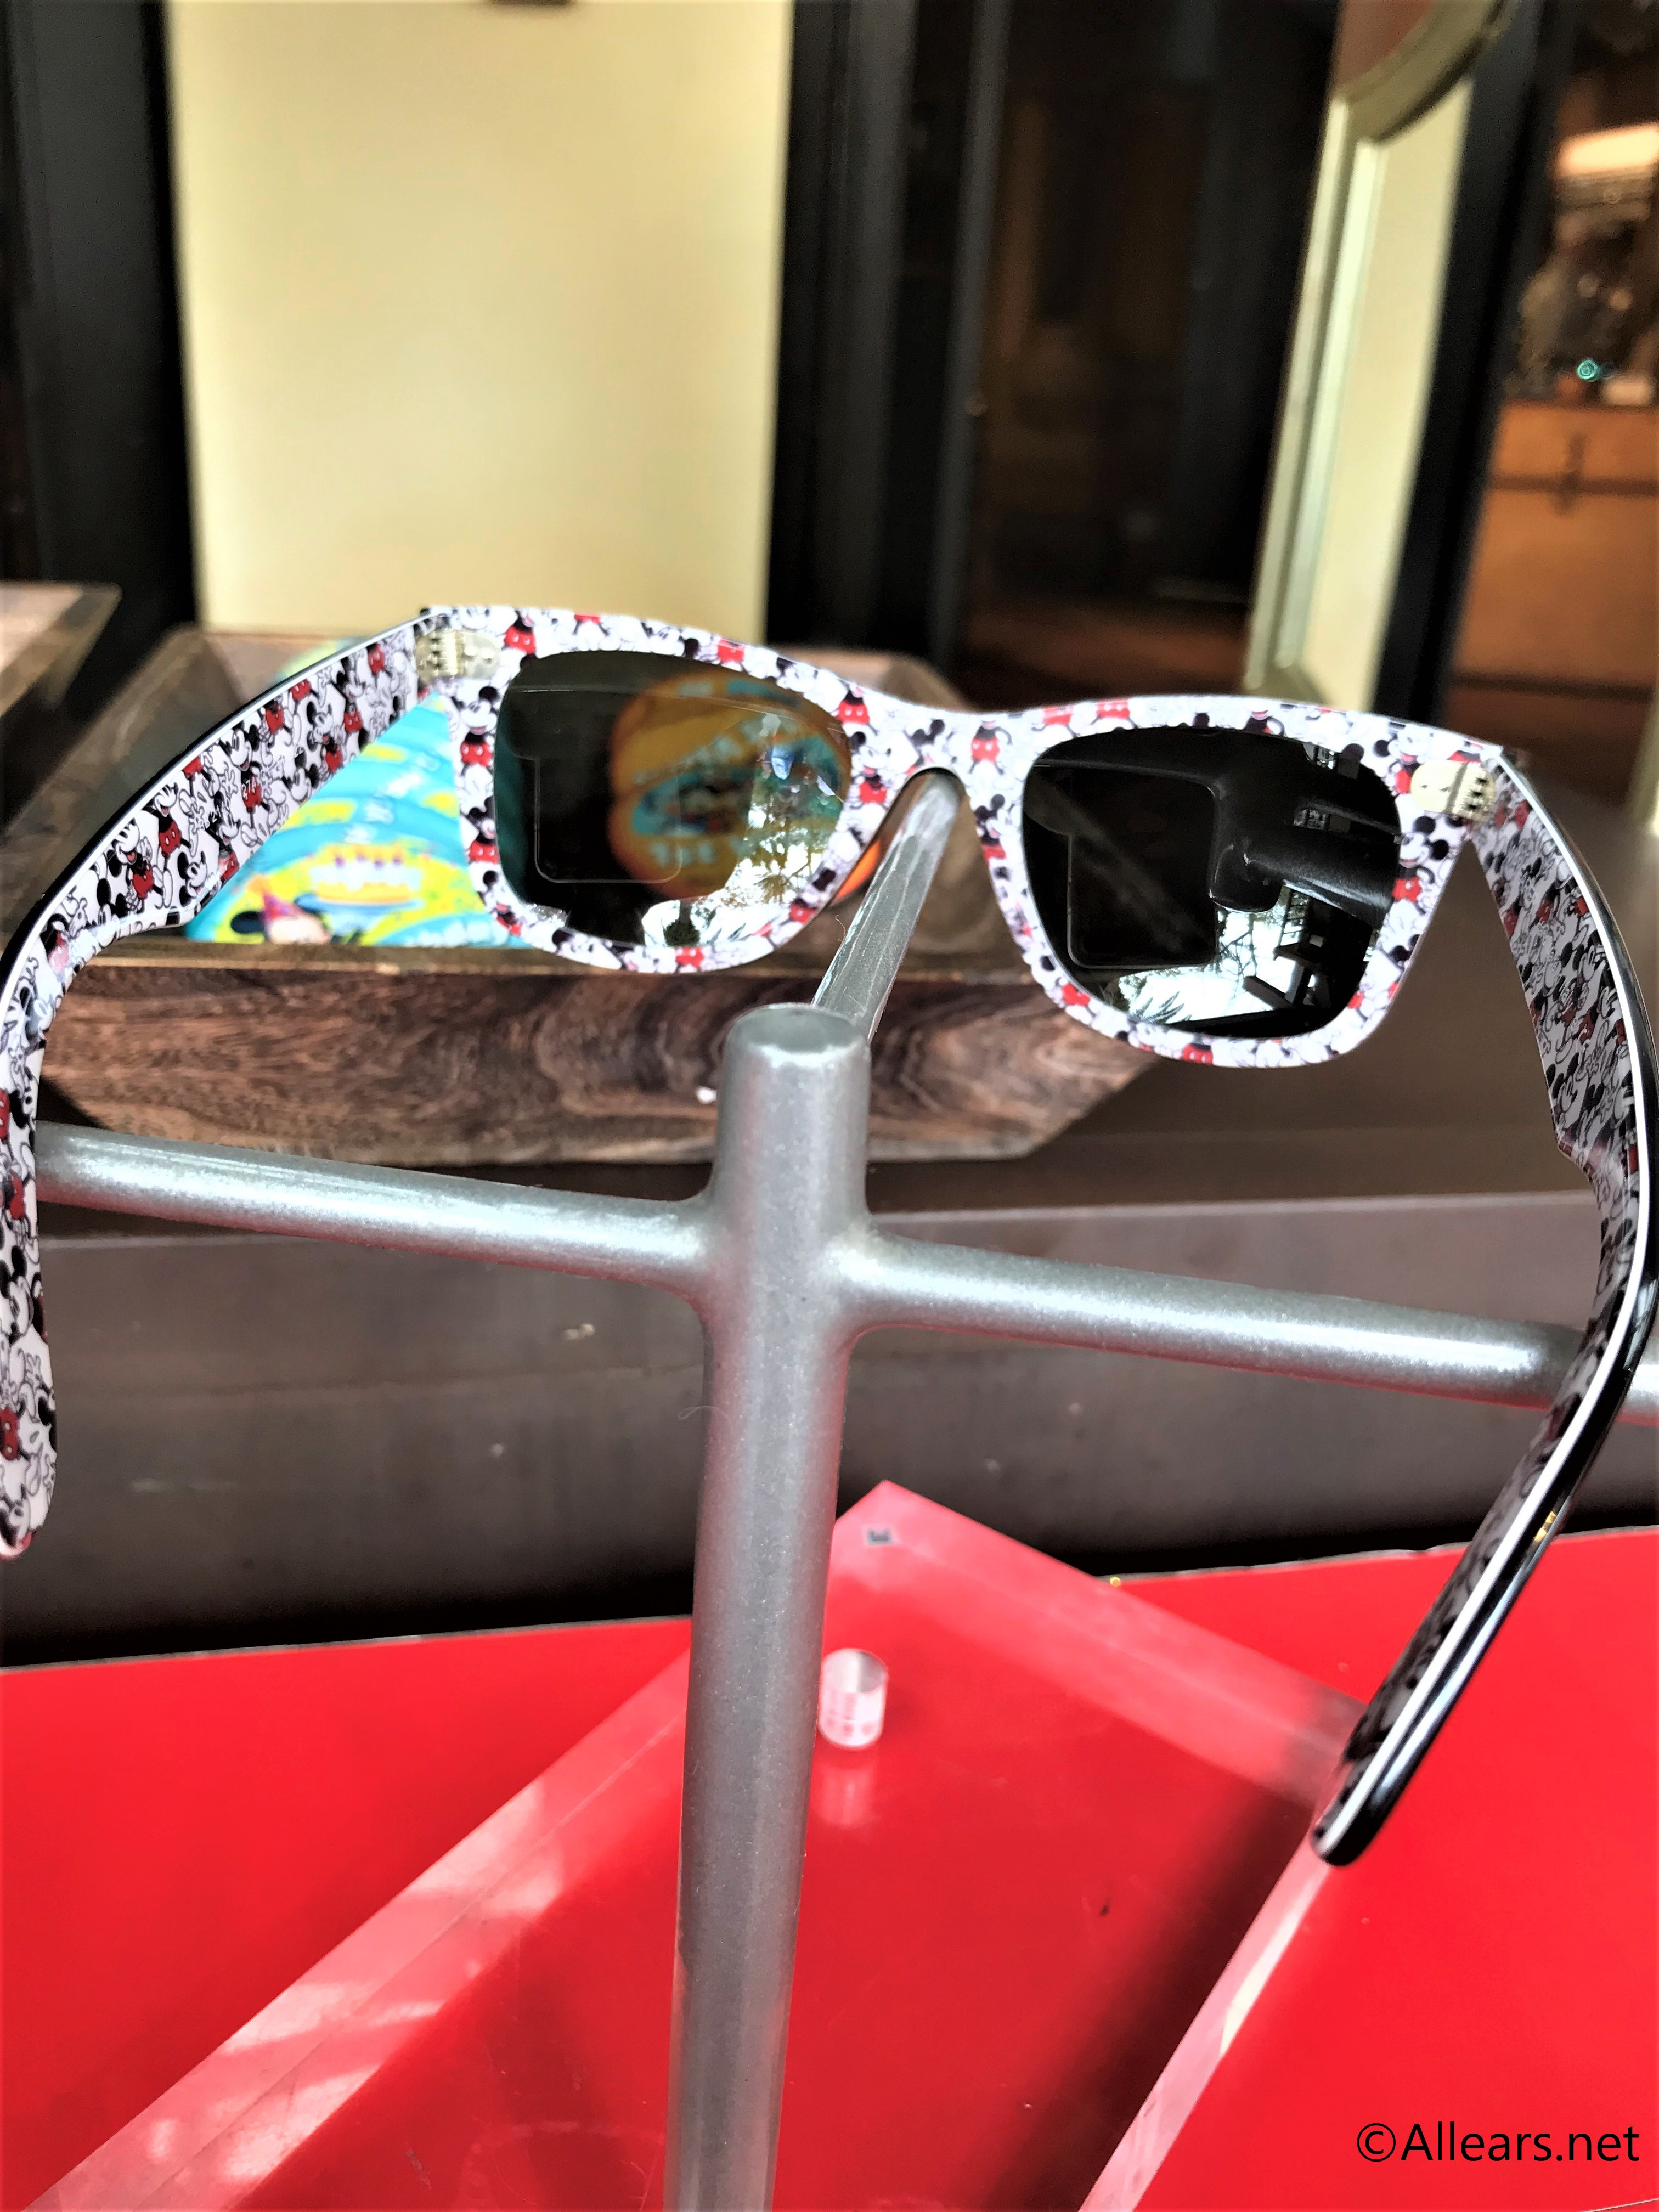 391f3f7f385d7 Ray-ban x Disney Wayfarer. We spotted these adorable Mickey sunglasses ...